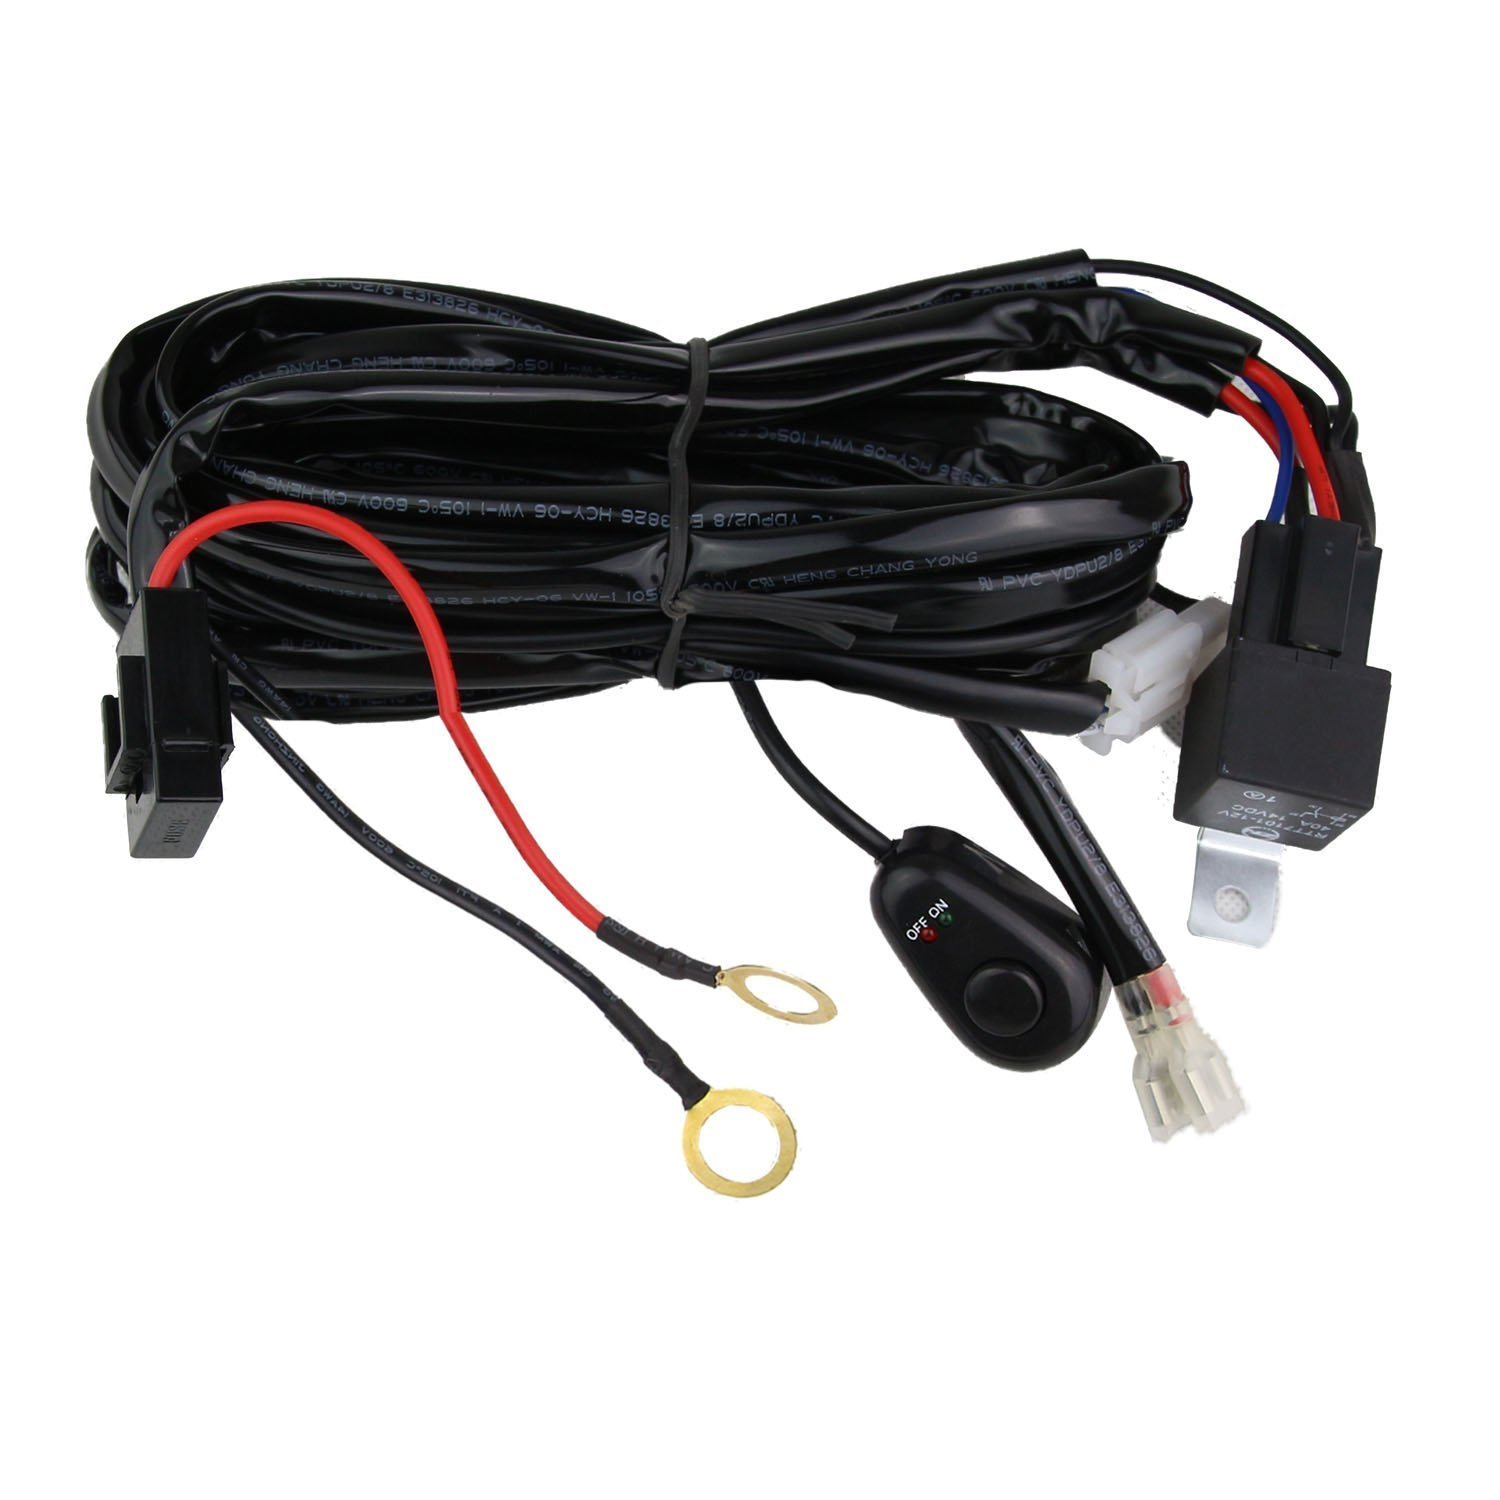 amazon com northpole light led light bar wiring harness 12v 40a rh amazon com 12v cummins wiring harness hid 12v wiring harness controller